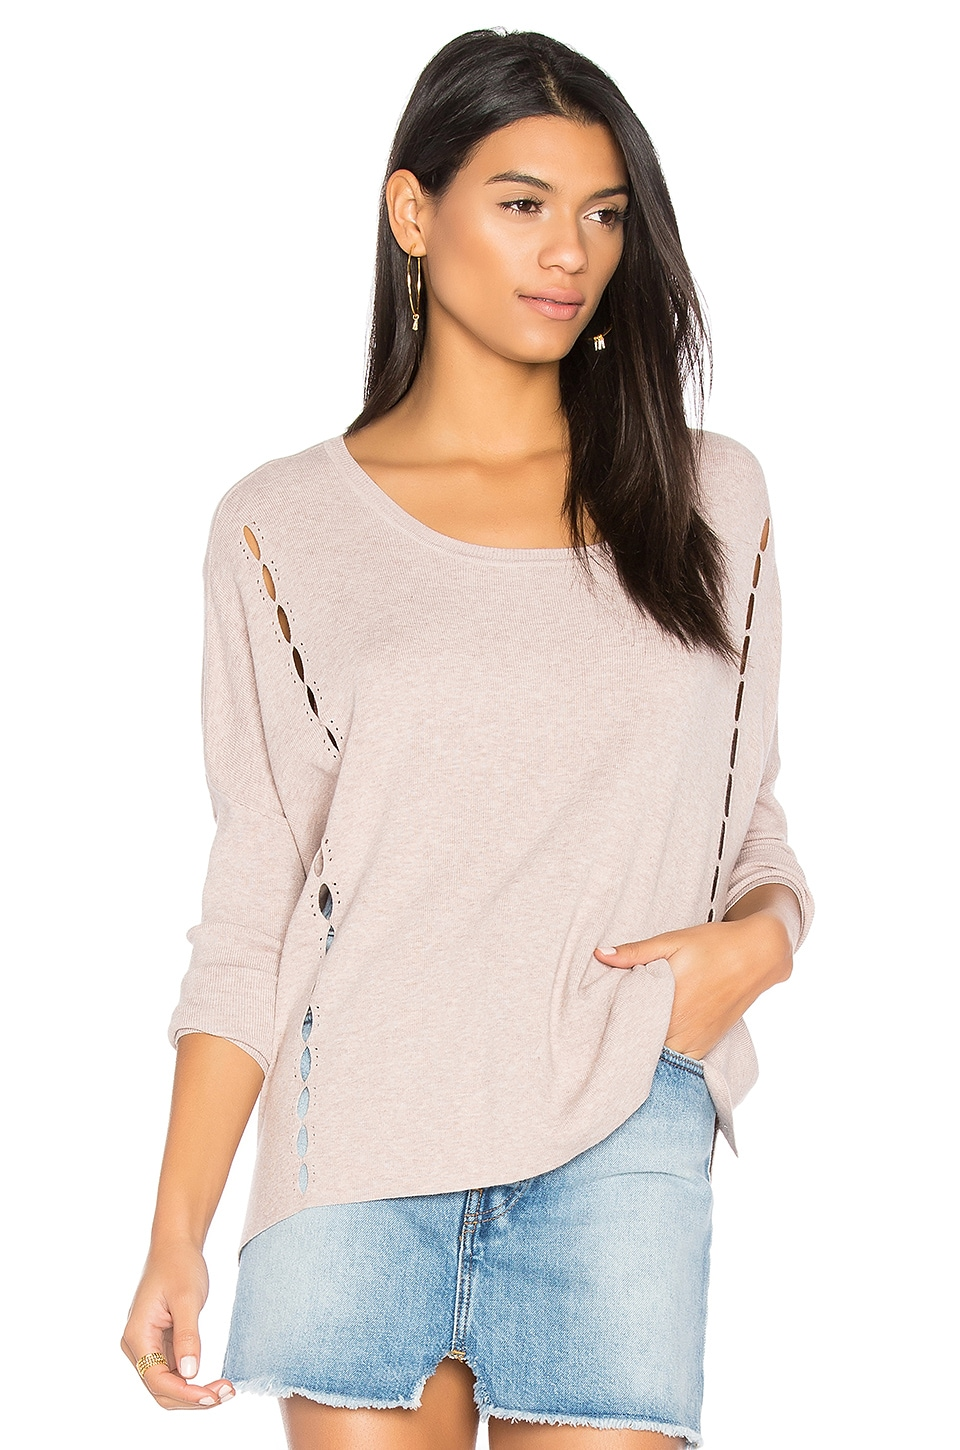 One Grey Day Riri Sweater in Rose